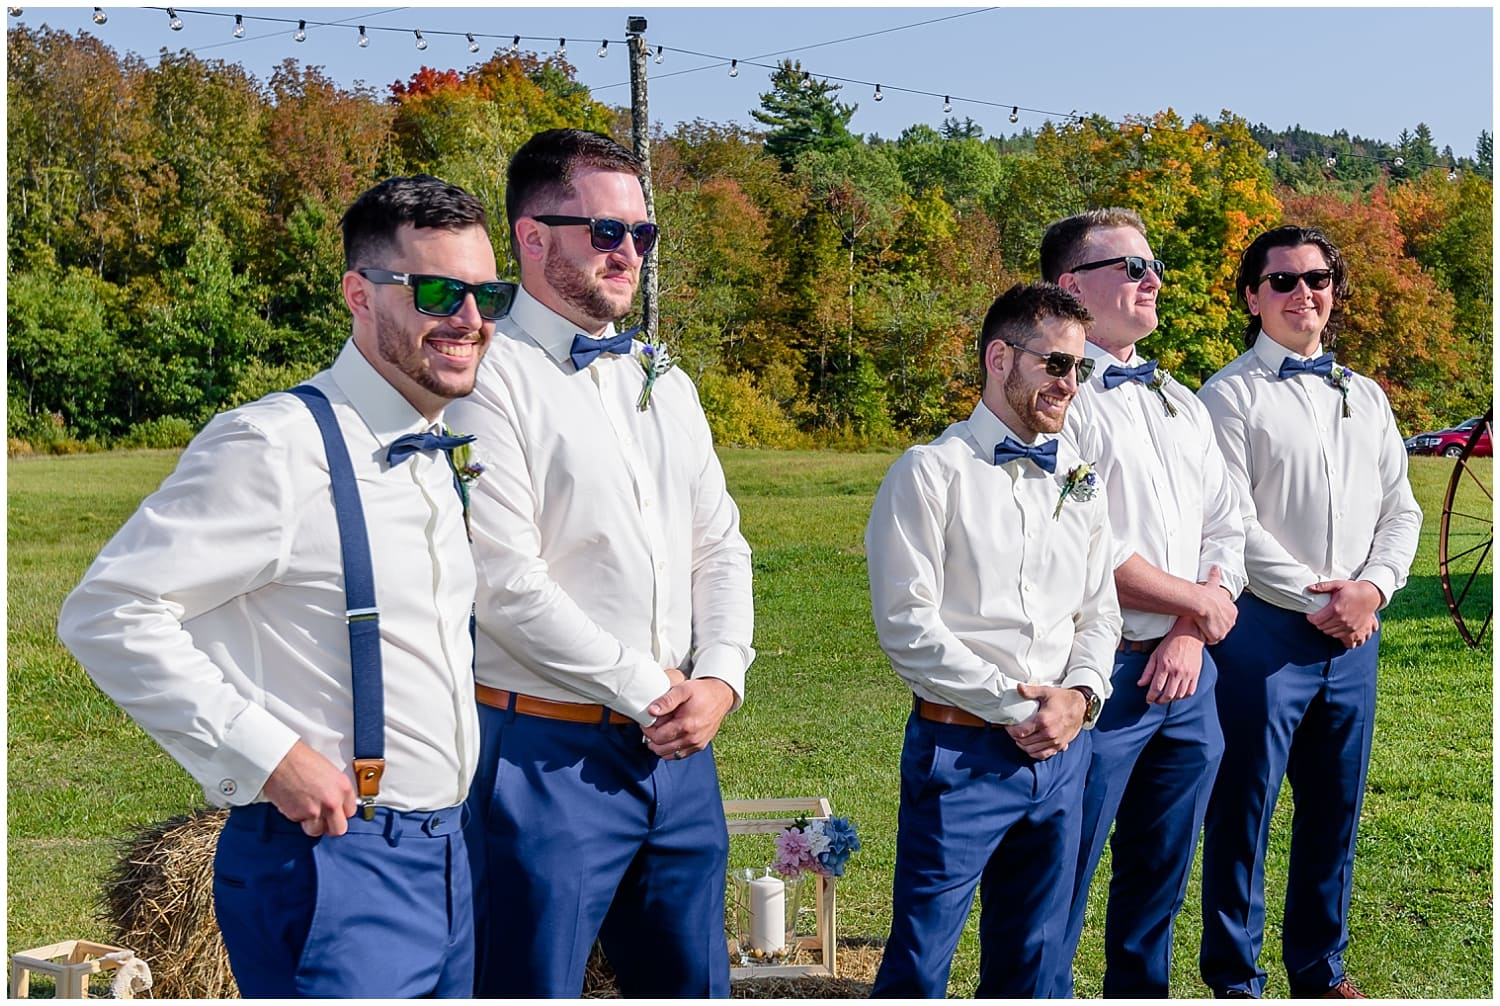 The groom stands with his groomsmen waiting for his bride to walk up the aisle during his wedding ceremony at the Barn at Sadie Belle Farm.